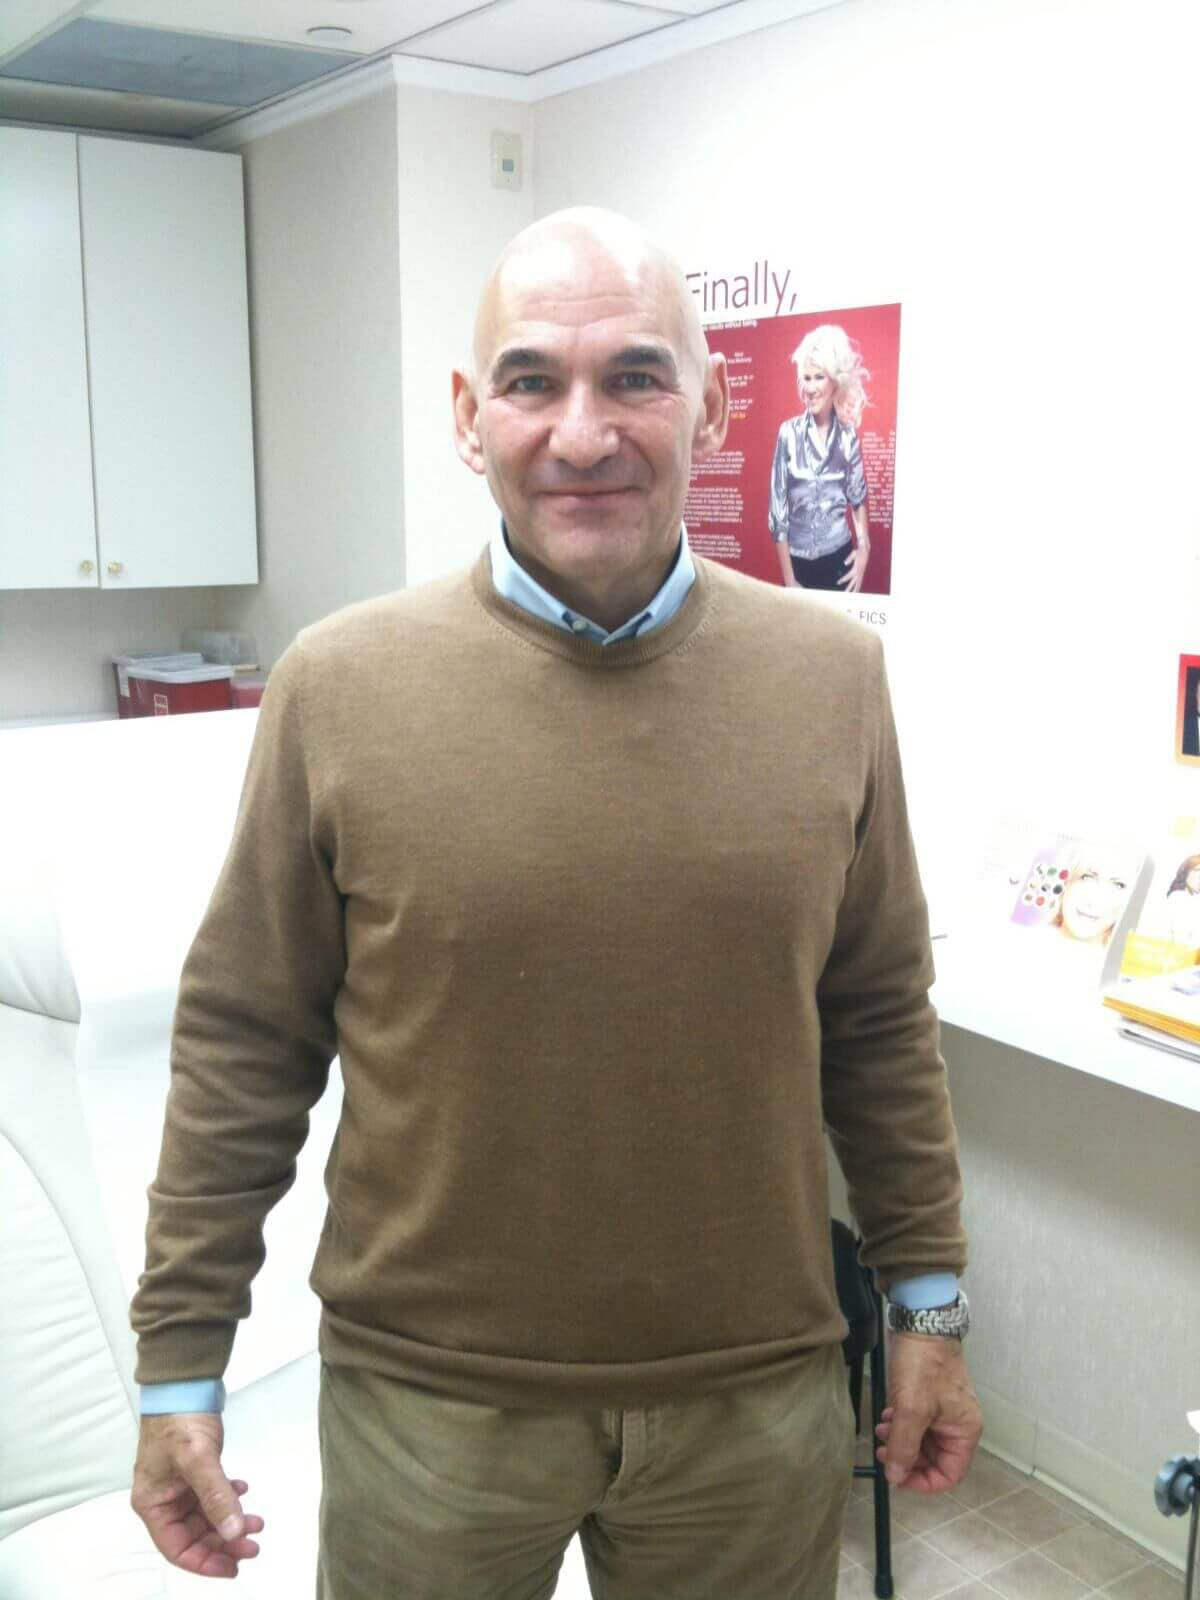 Jw Ucla Prof. | Pages | The Weight Loss Surgery Center Of Los Angeles | Dr. David Davtyan